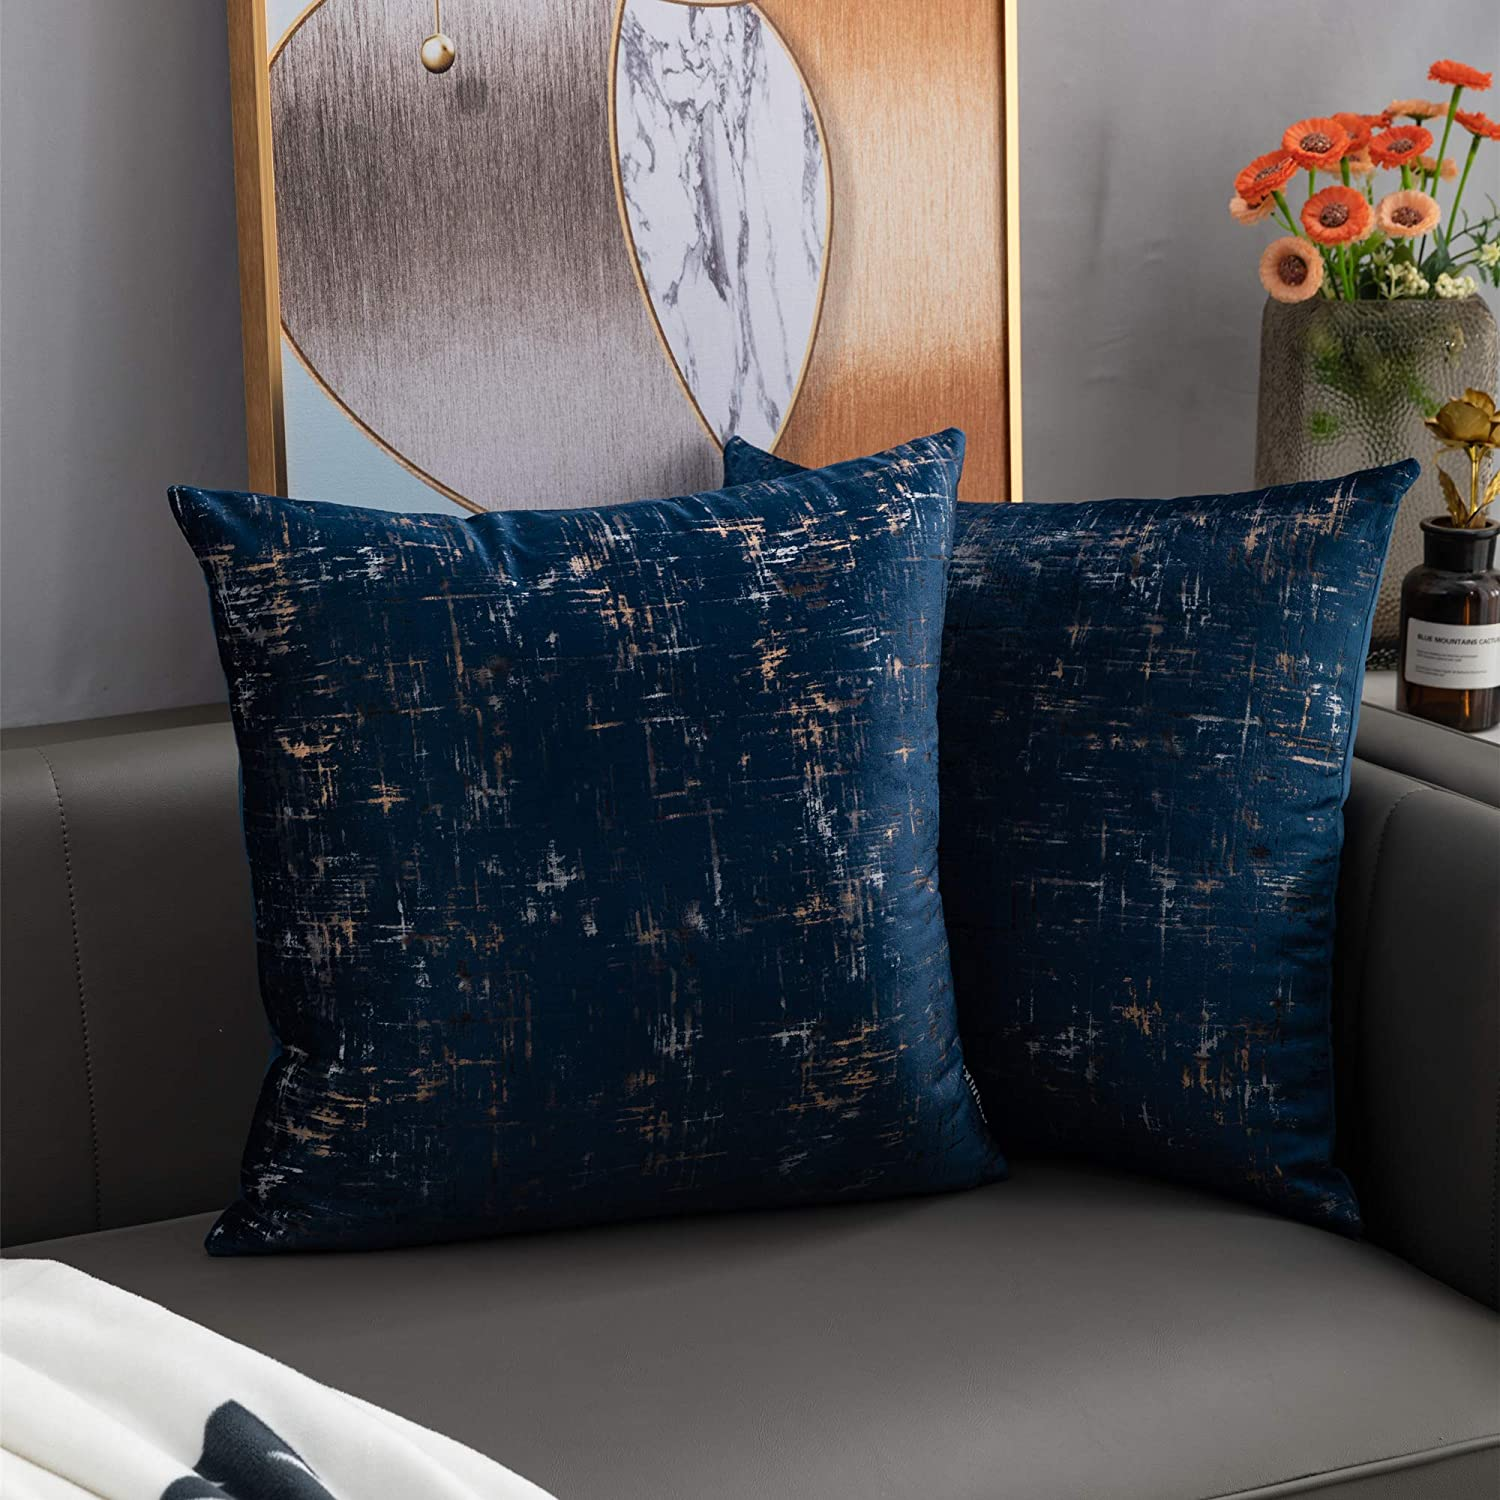 Nanhiking Velvet Soft tie-dye Throw Pillow Covers Navy Decorative Square 20x20inch Cushion Case for Sofa Bedroom Car 2 Pack(Navy 20x20) : Home & Kitchen